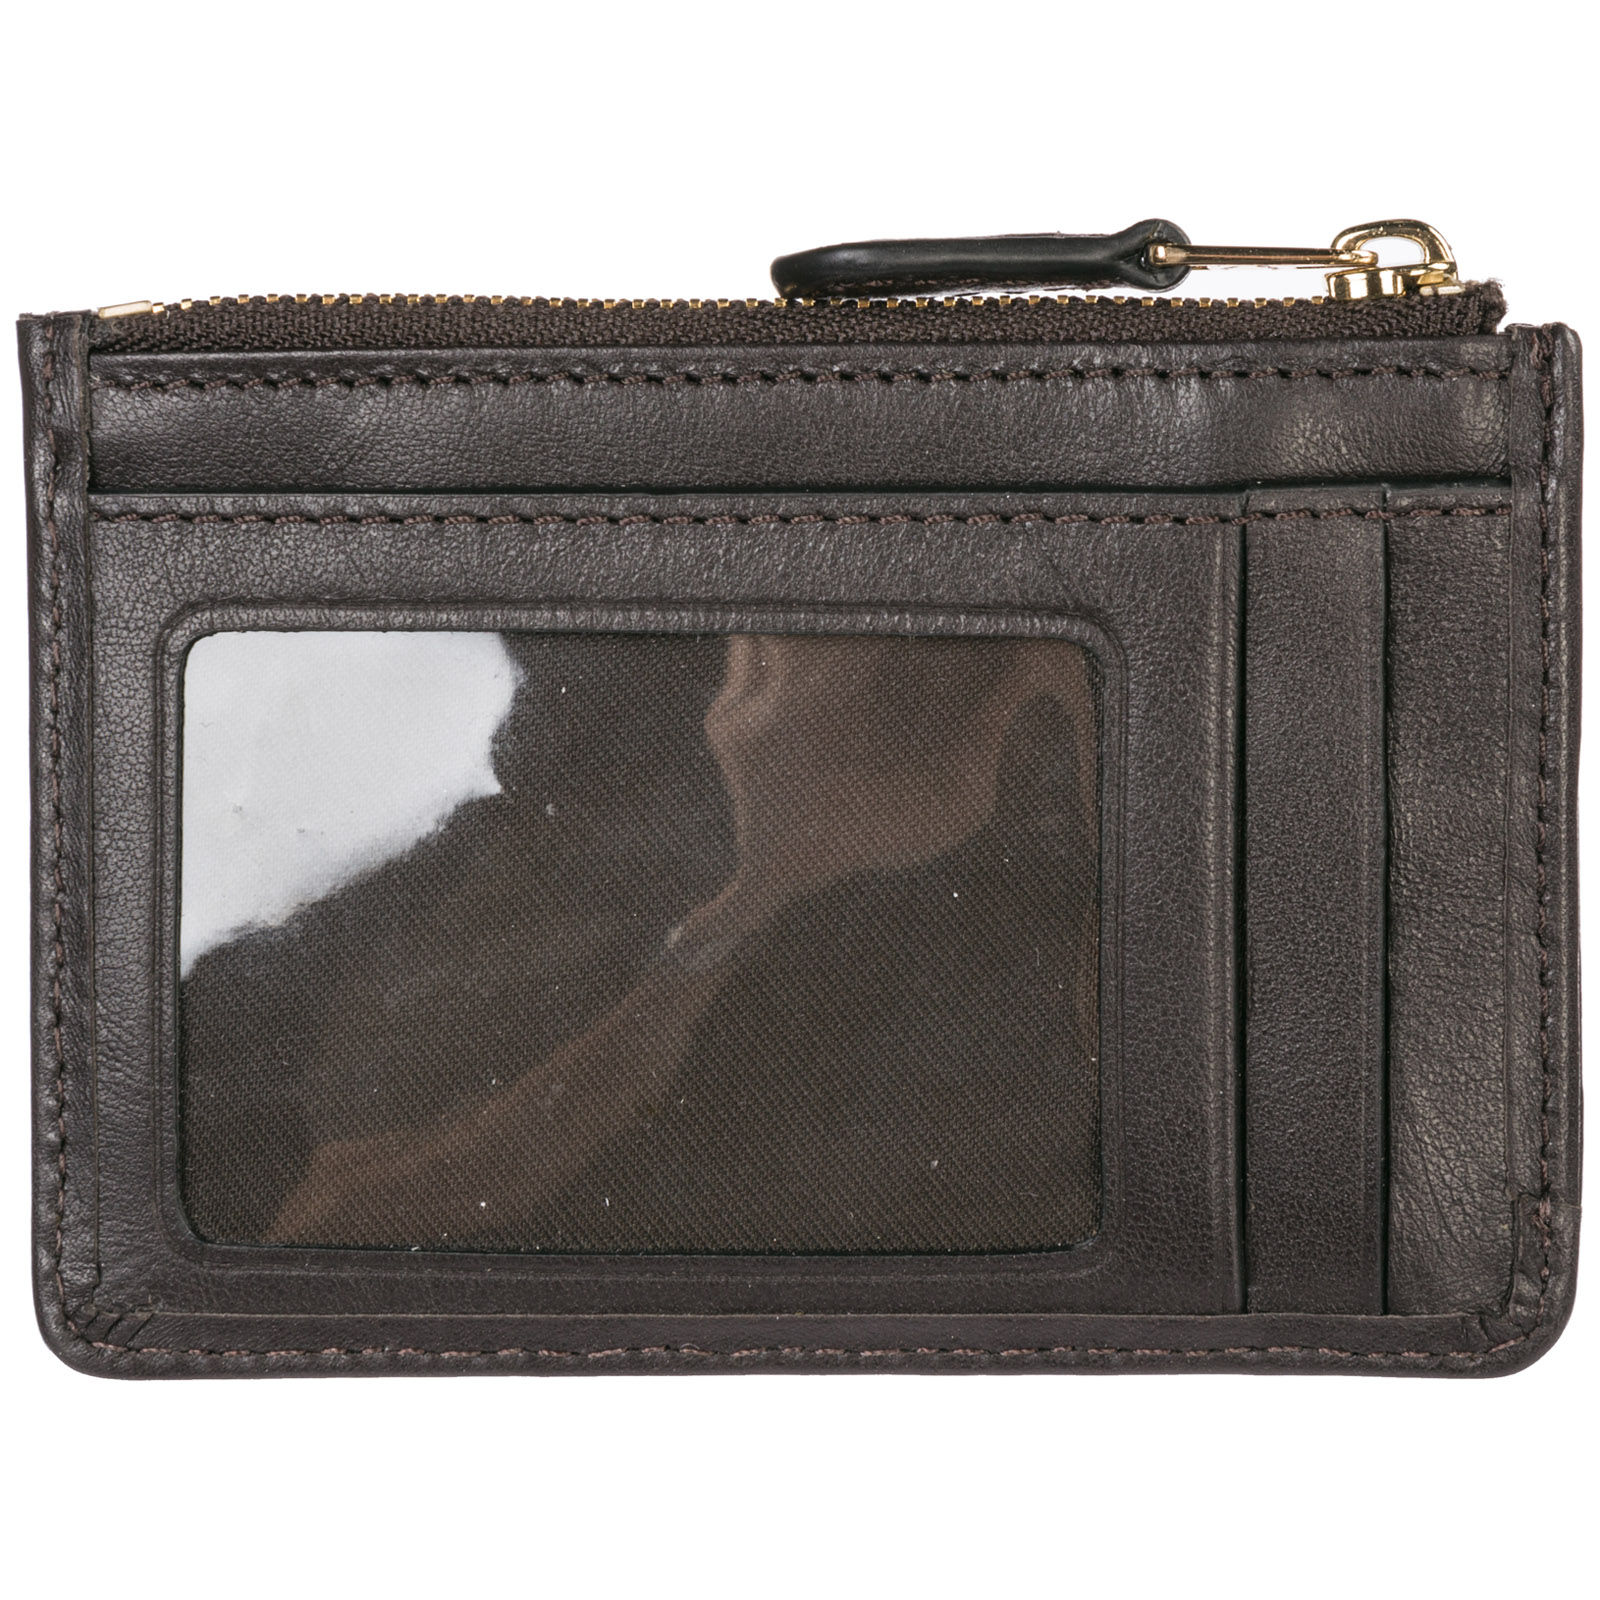 6a32366f14e3 Women's genuine leather credit card case holder wallet